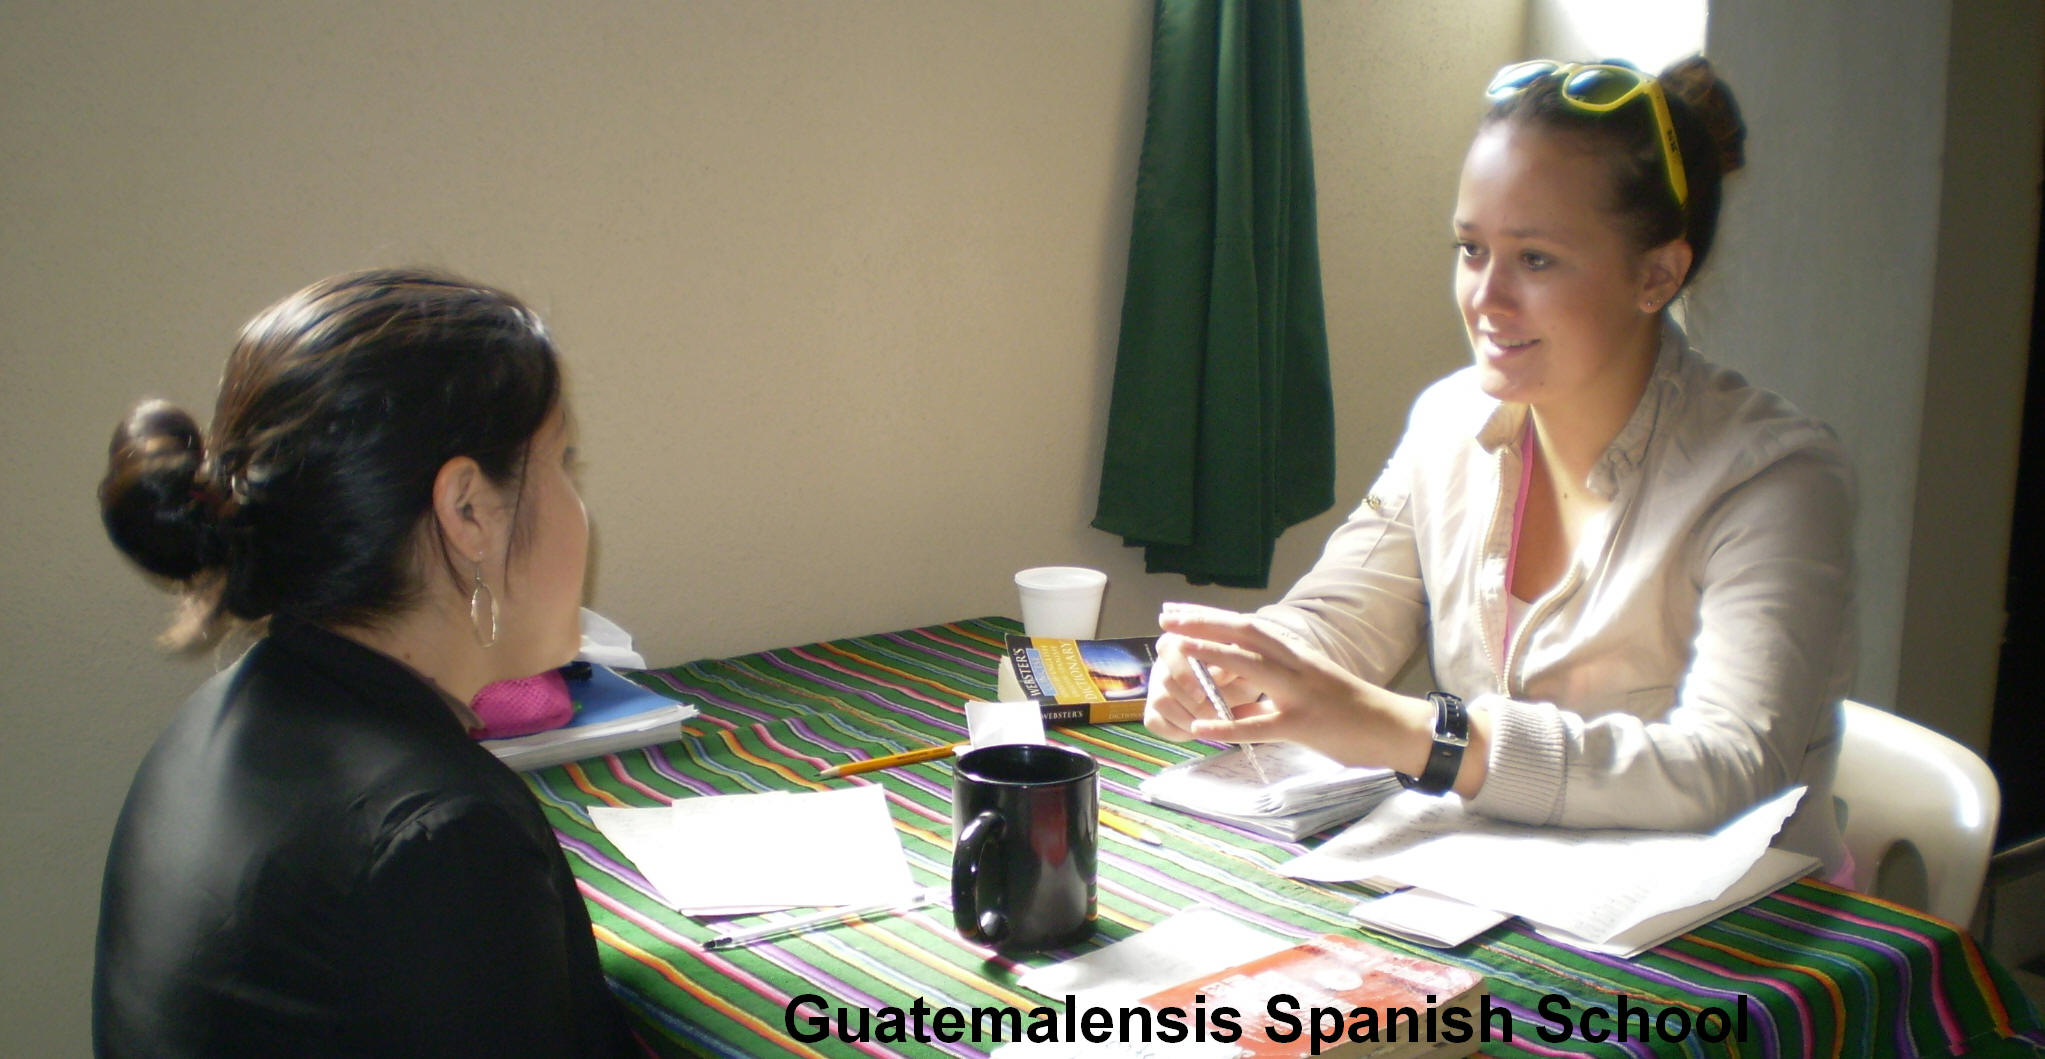 A motivated student learning spanish at Guatemalensis Spanish School.